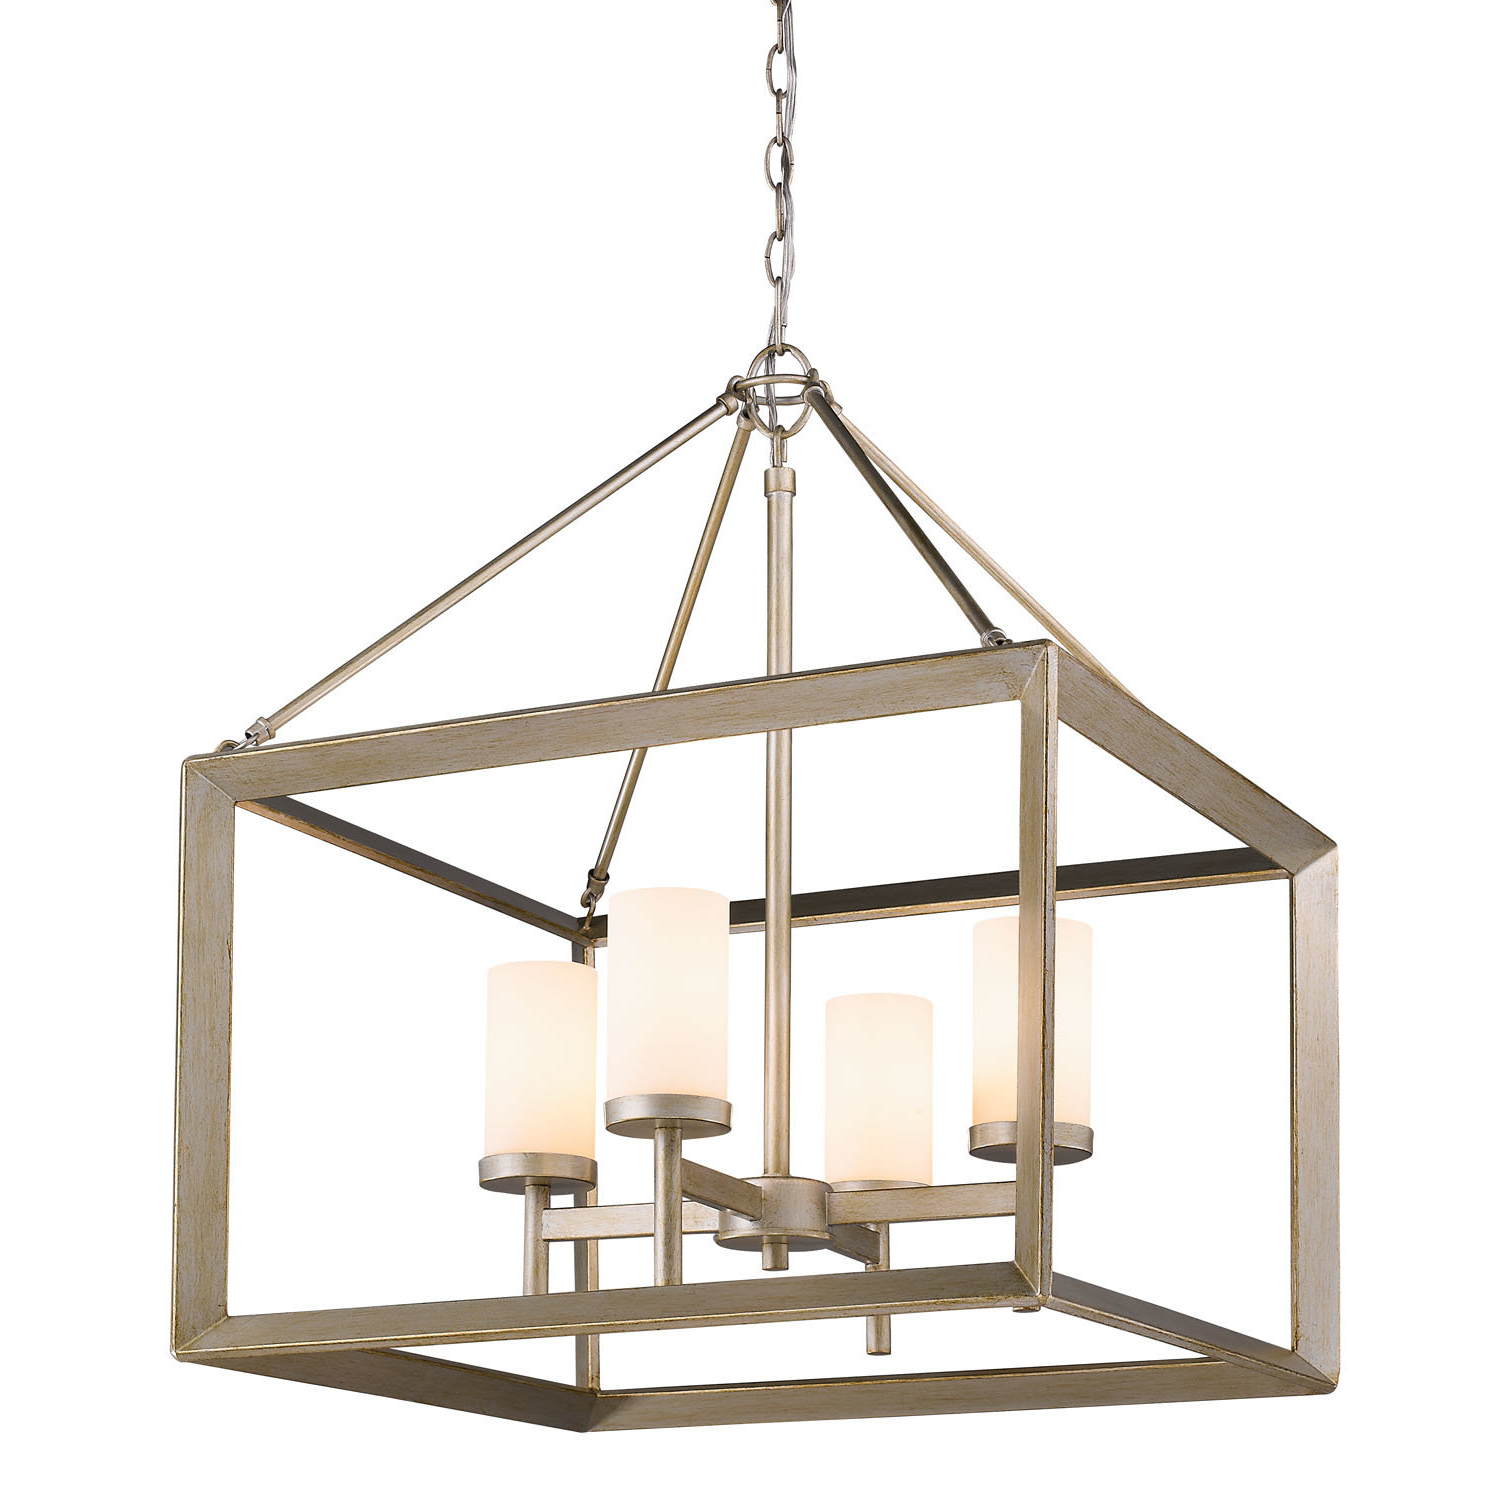 Thorne 4 Light Lantern Rectangle Pendant Throughout Widely Used Thorne 6 Light Lantern Square / Rectangle Pendants (View 12 of 20)